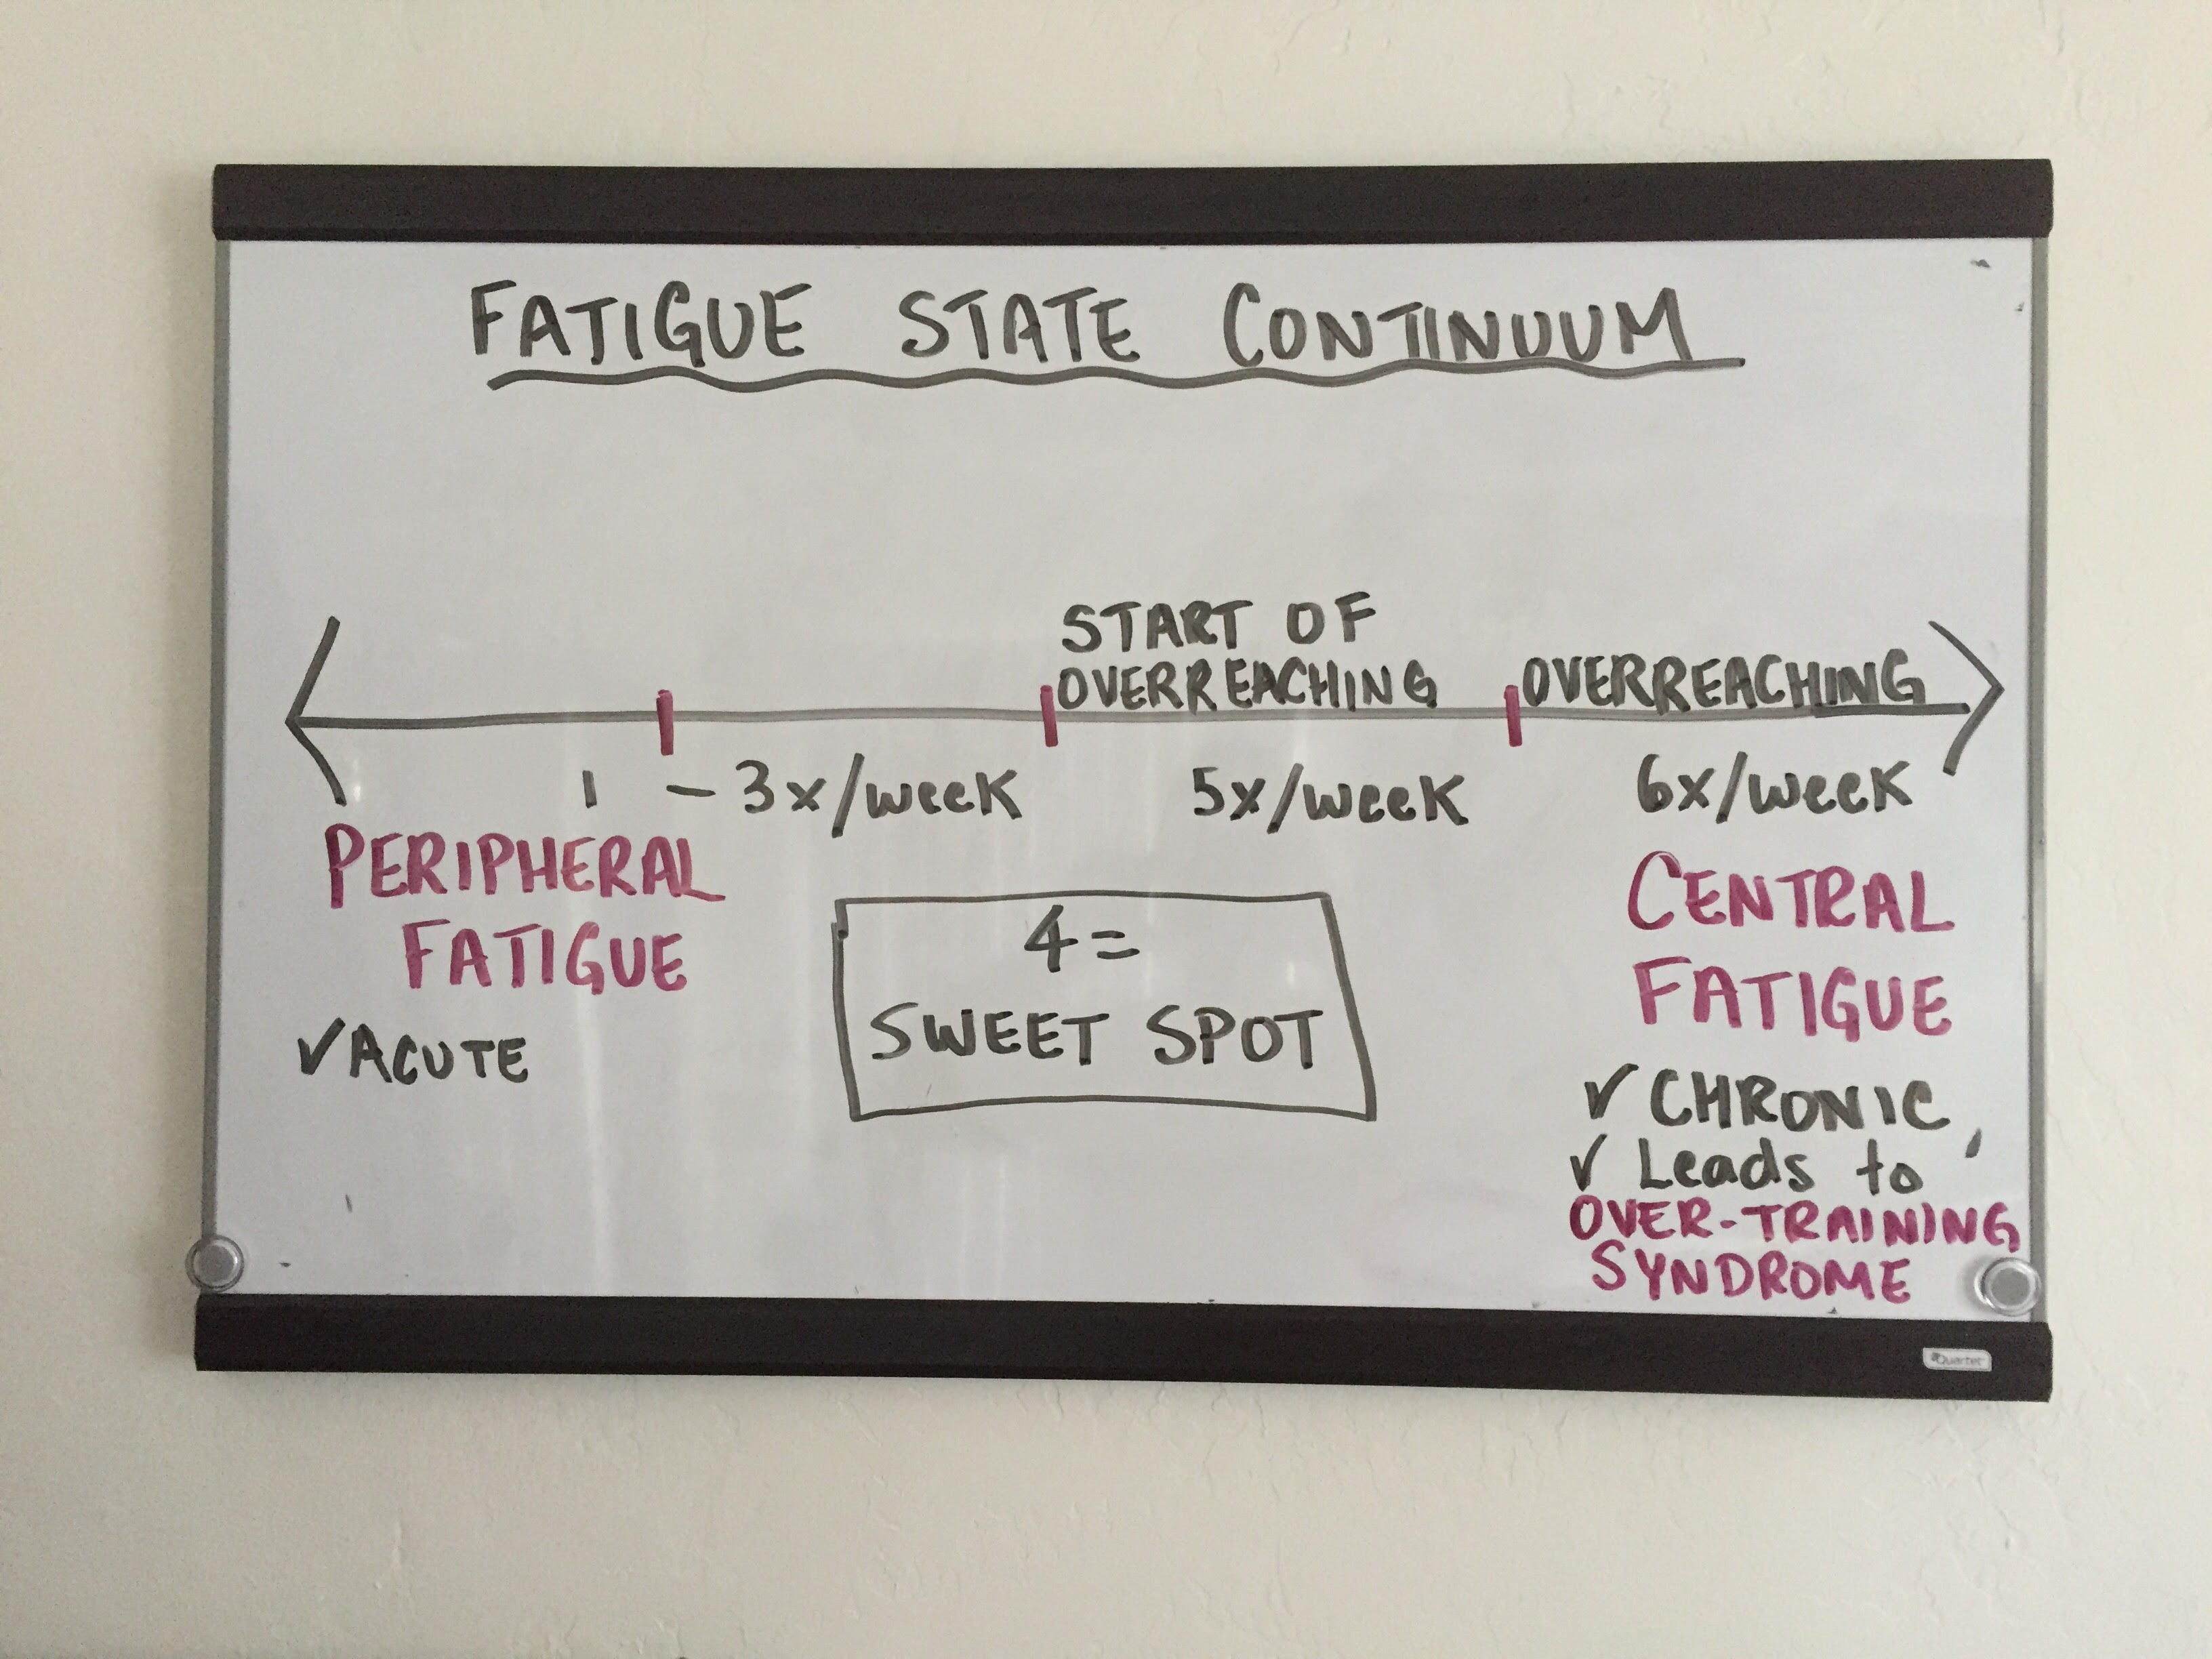 fatigue state continuum